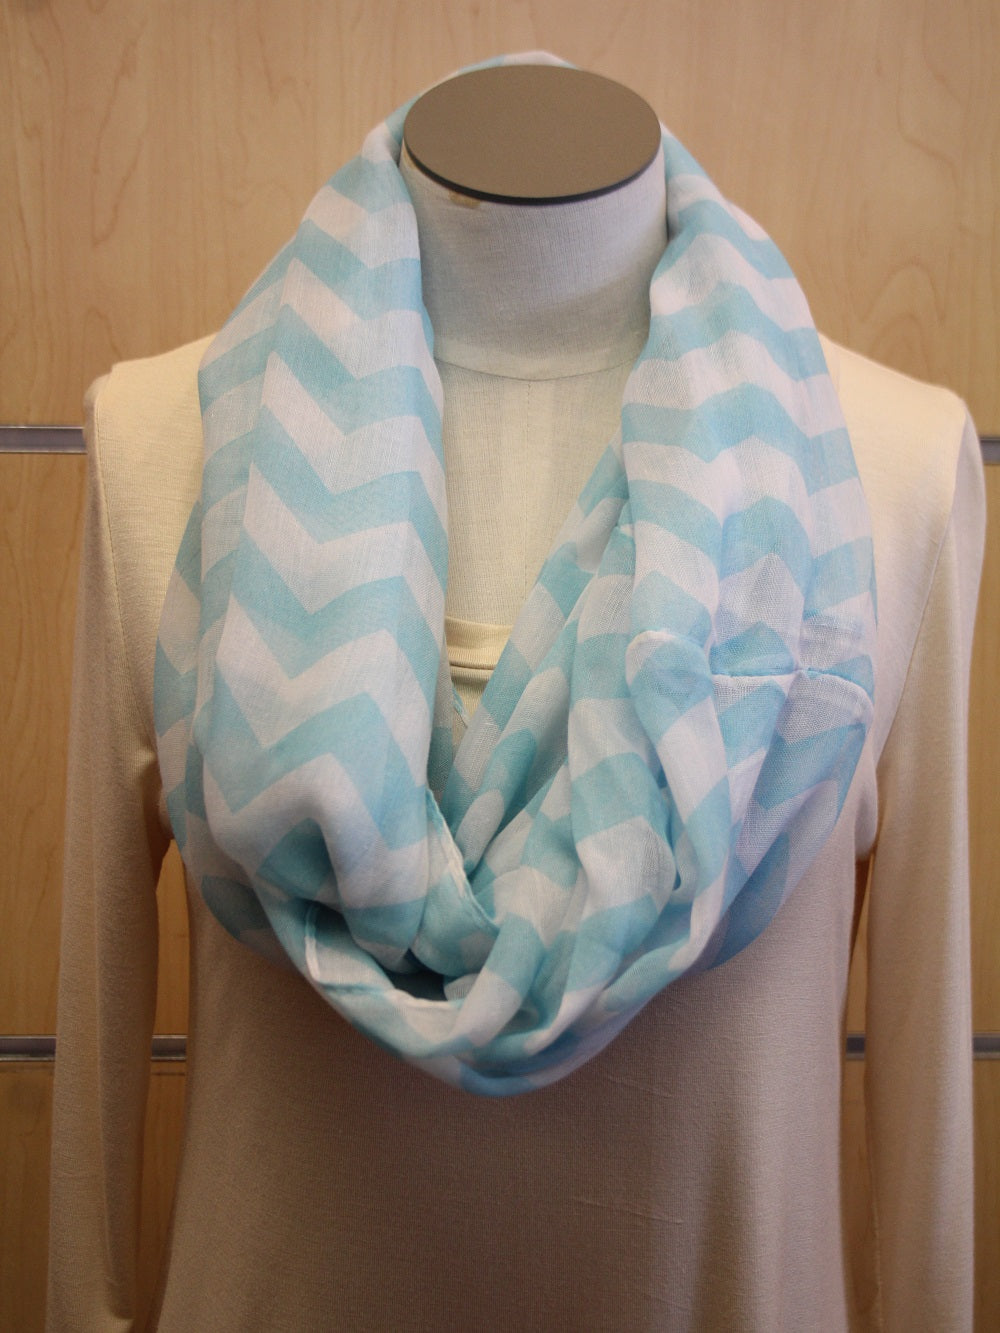 ADO | Infinity Light Blue and White Chevron Scarf